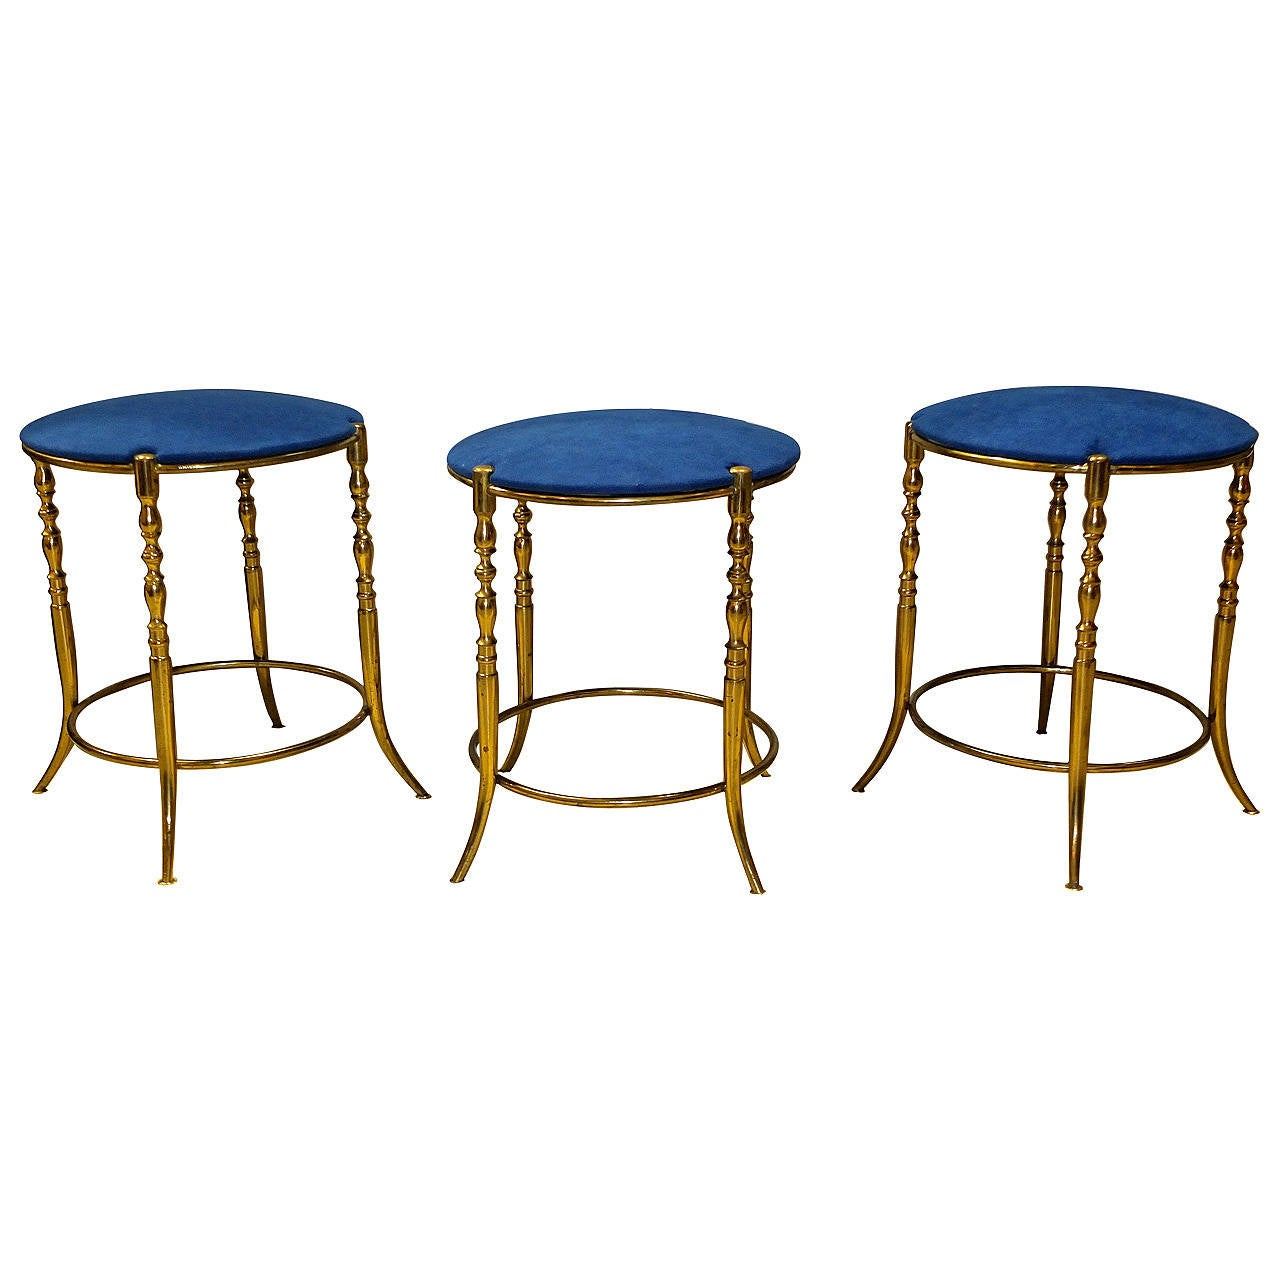 Set of Three Italian Brass Chiavari Round Stools 1